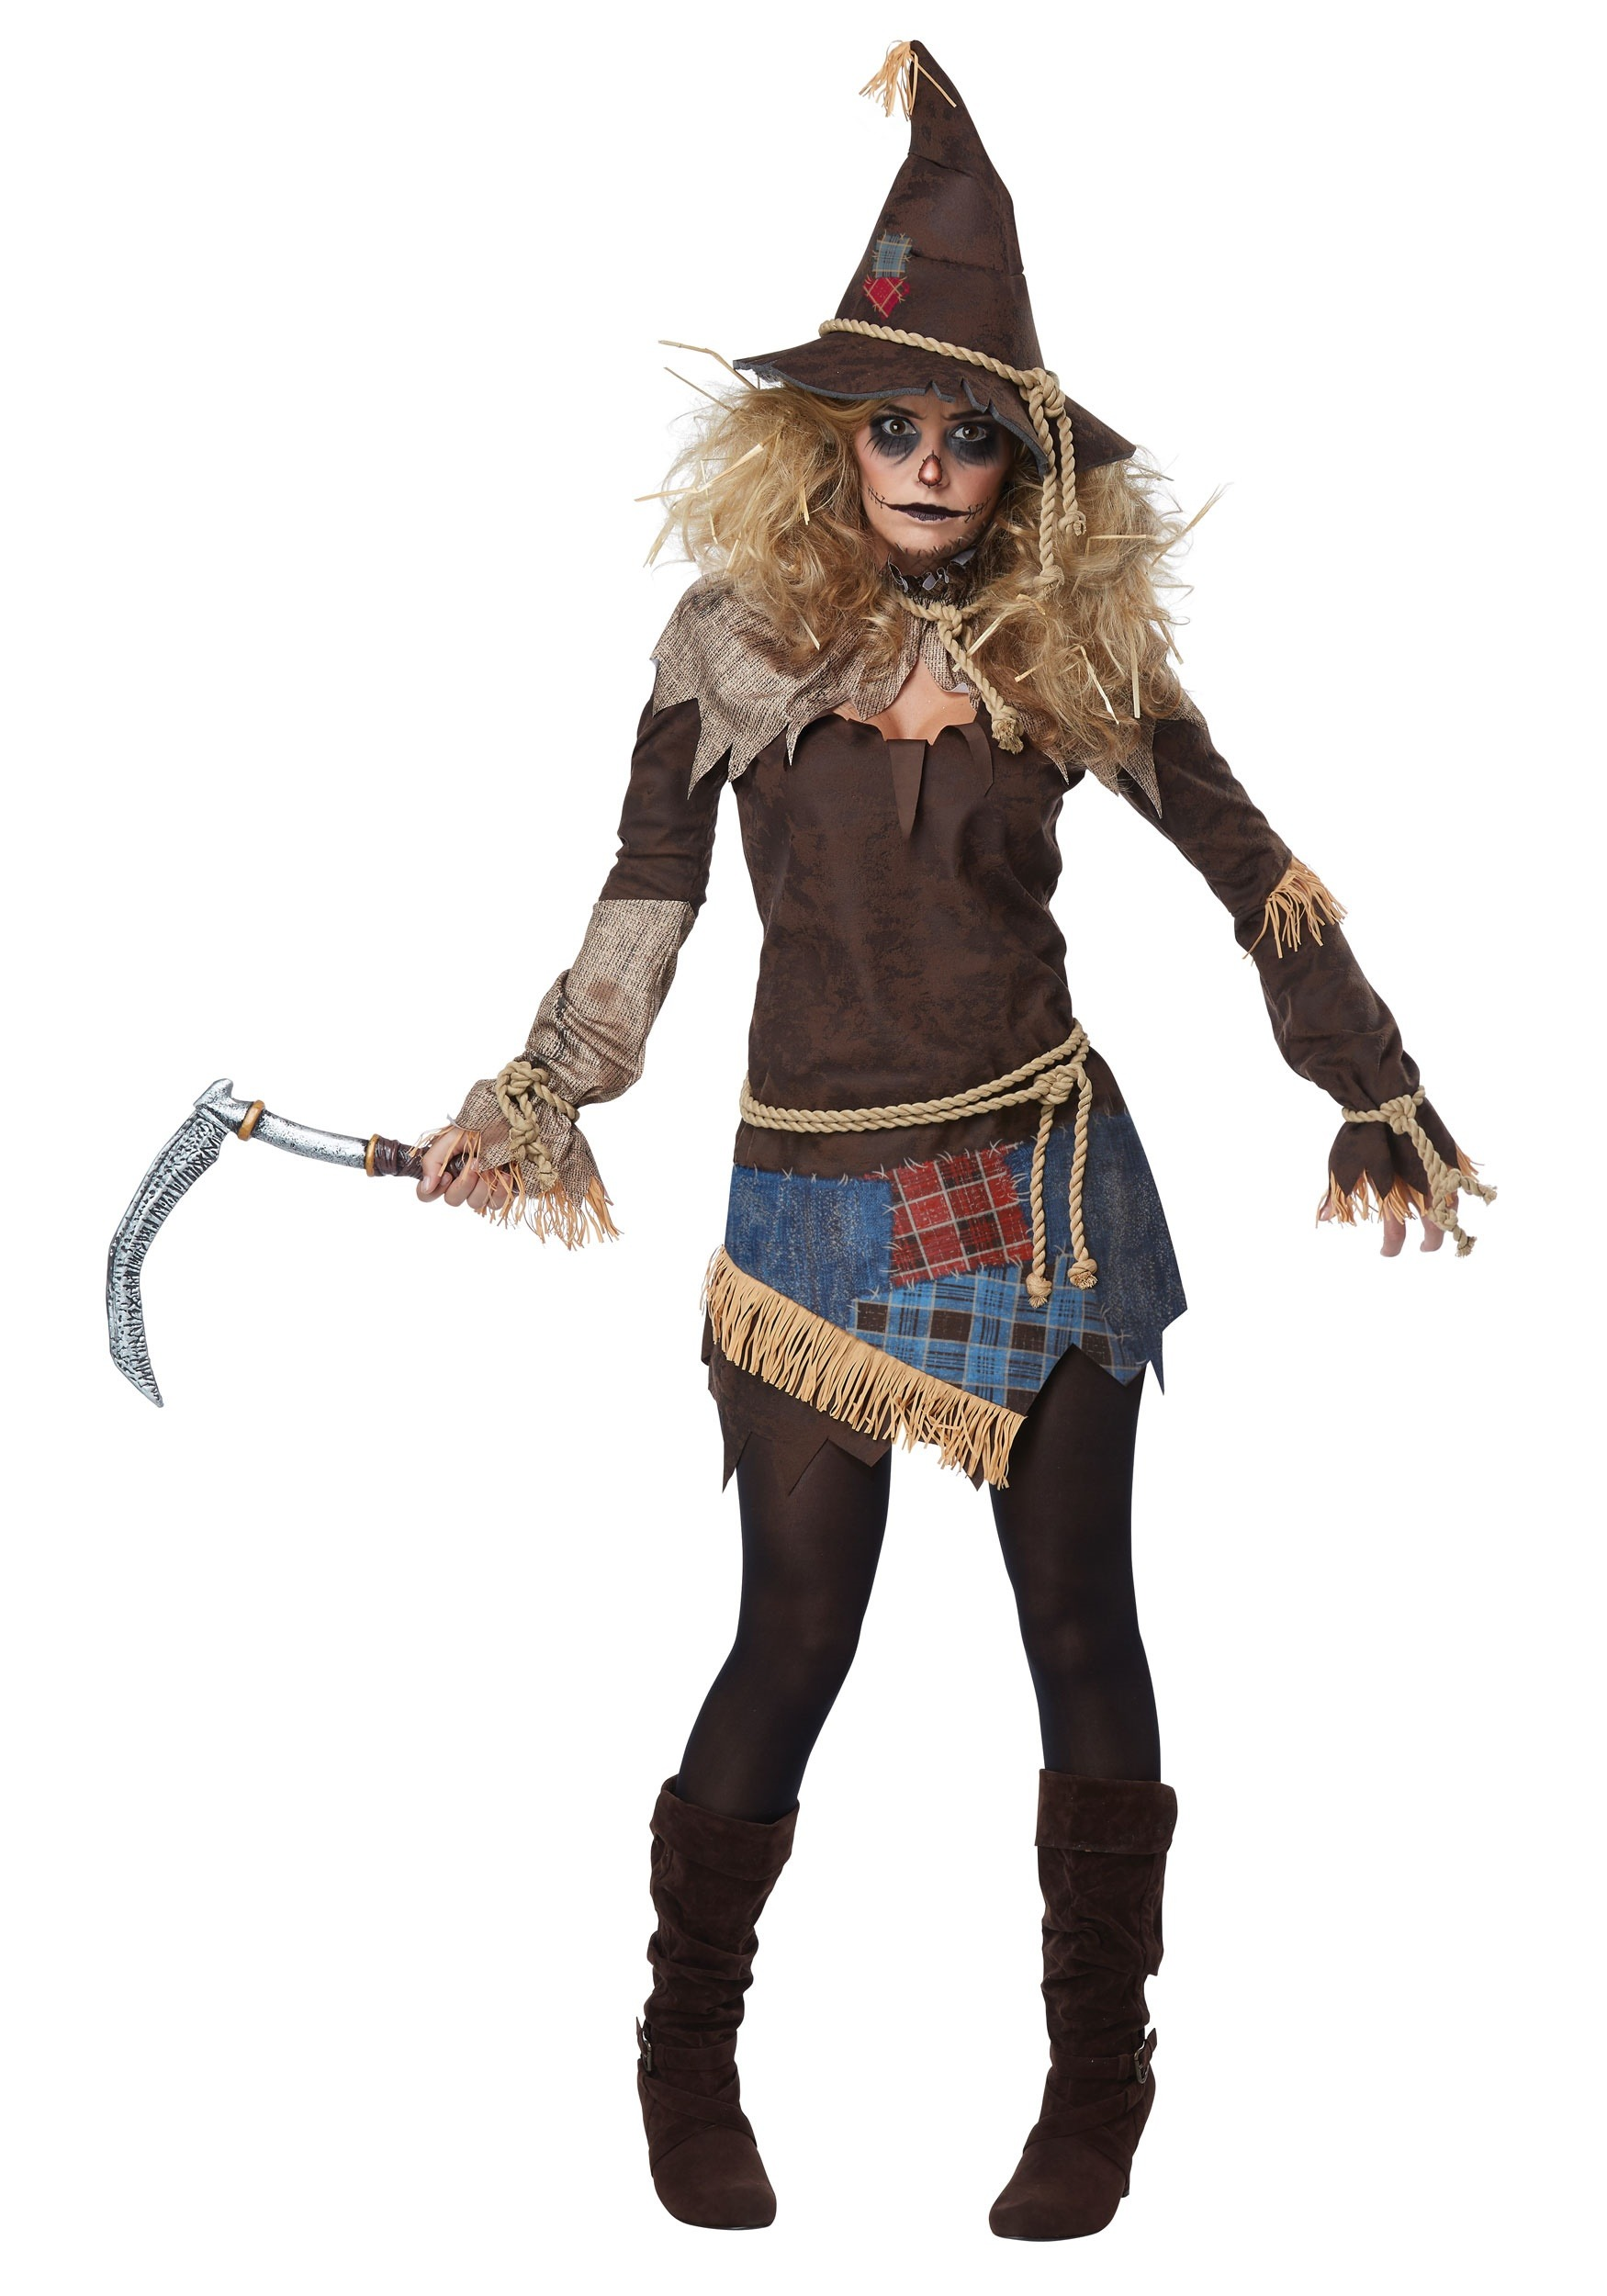 Crazy Scary Halloween Costumes | Scary Adult Costumes Adult Scary Halloween Costume Ideas